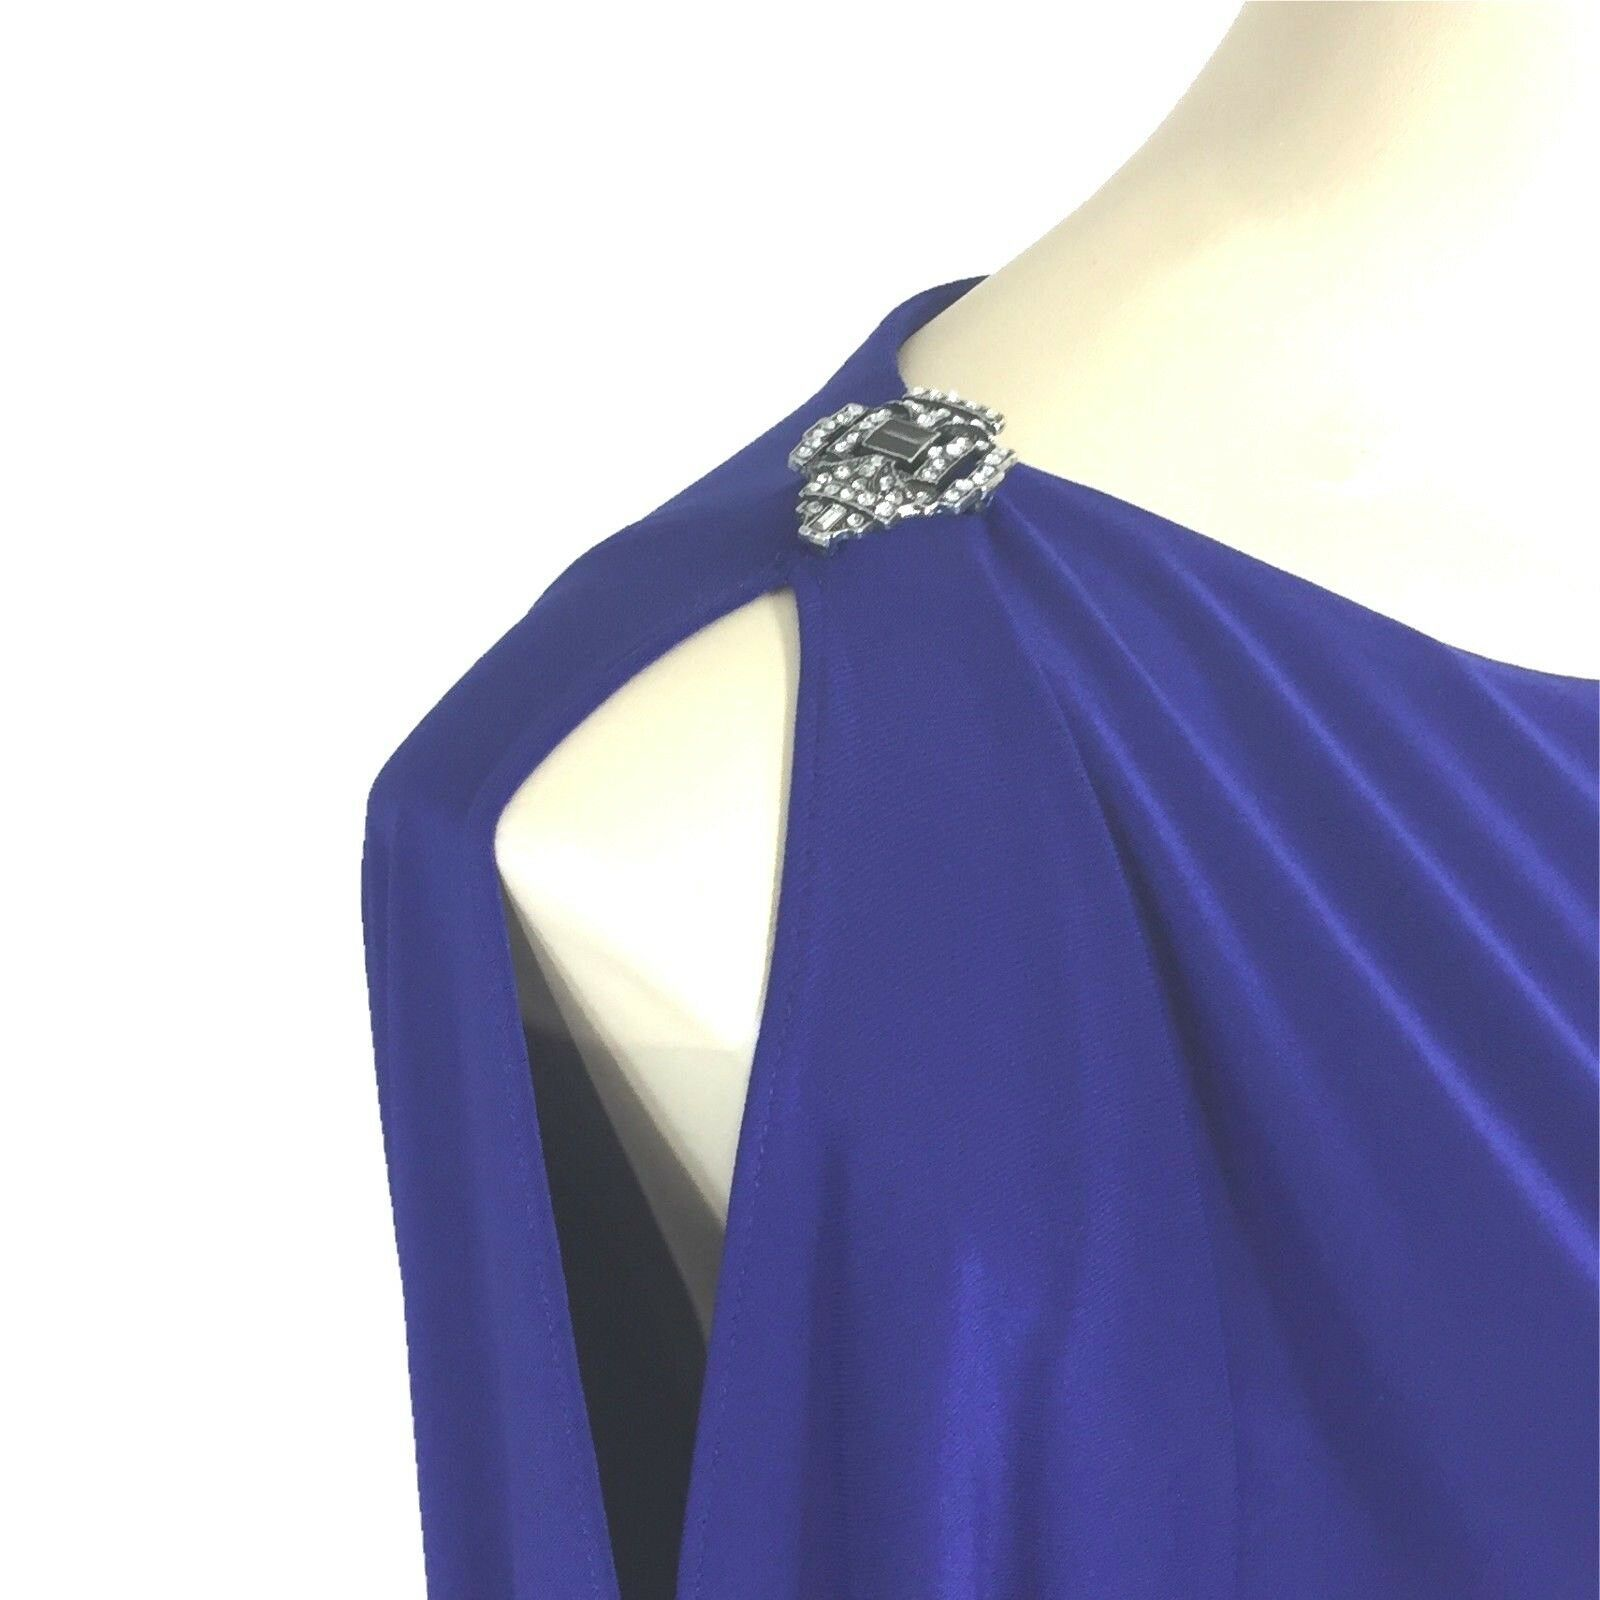 Ralph Lauren Evening Dress 14 XL Dark Blue Rhinestone Bling Open Sl Cocktail LN